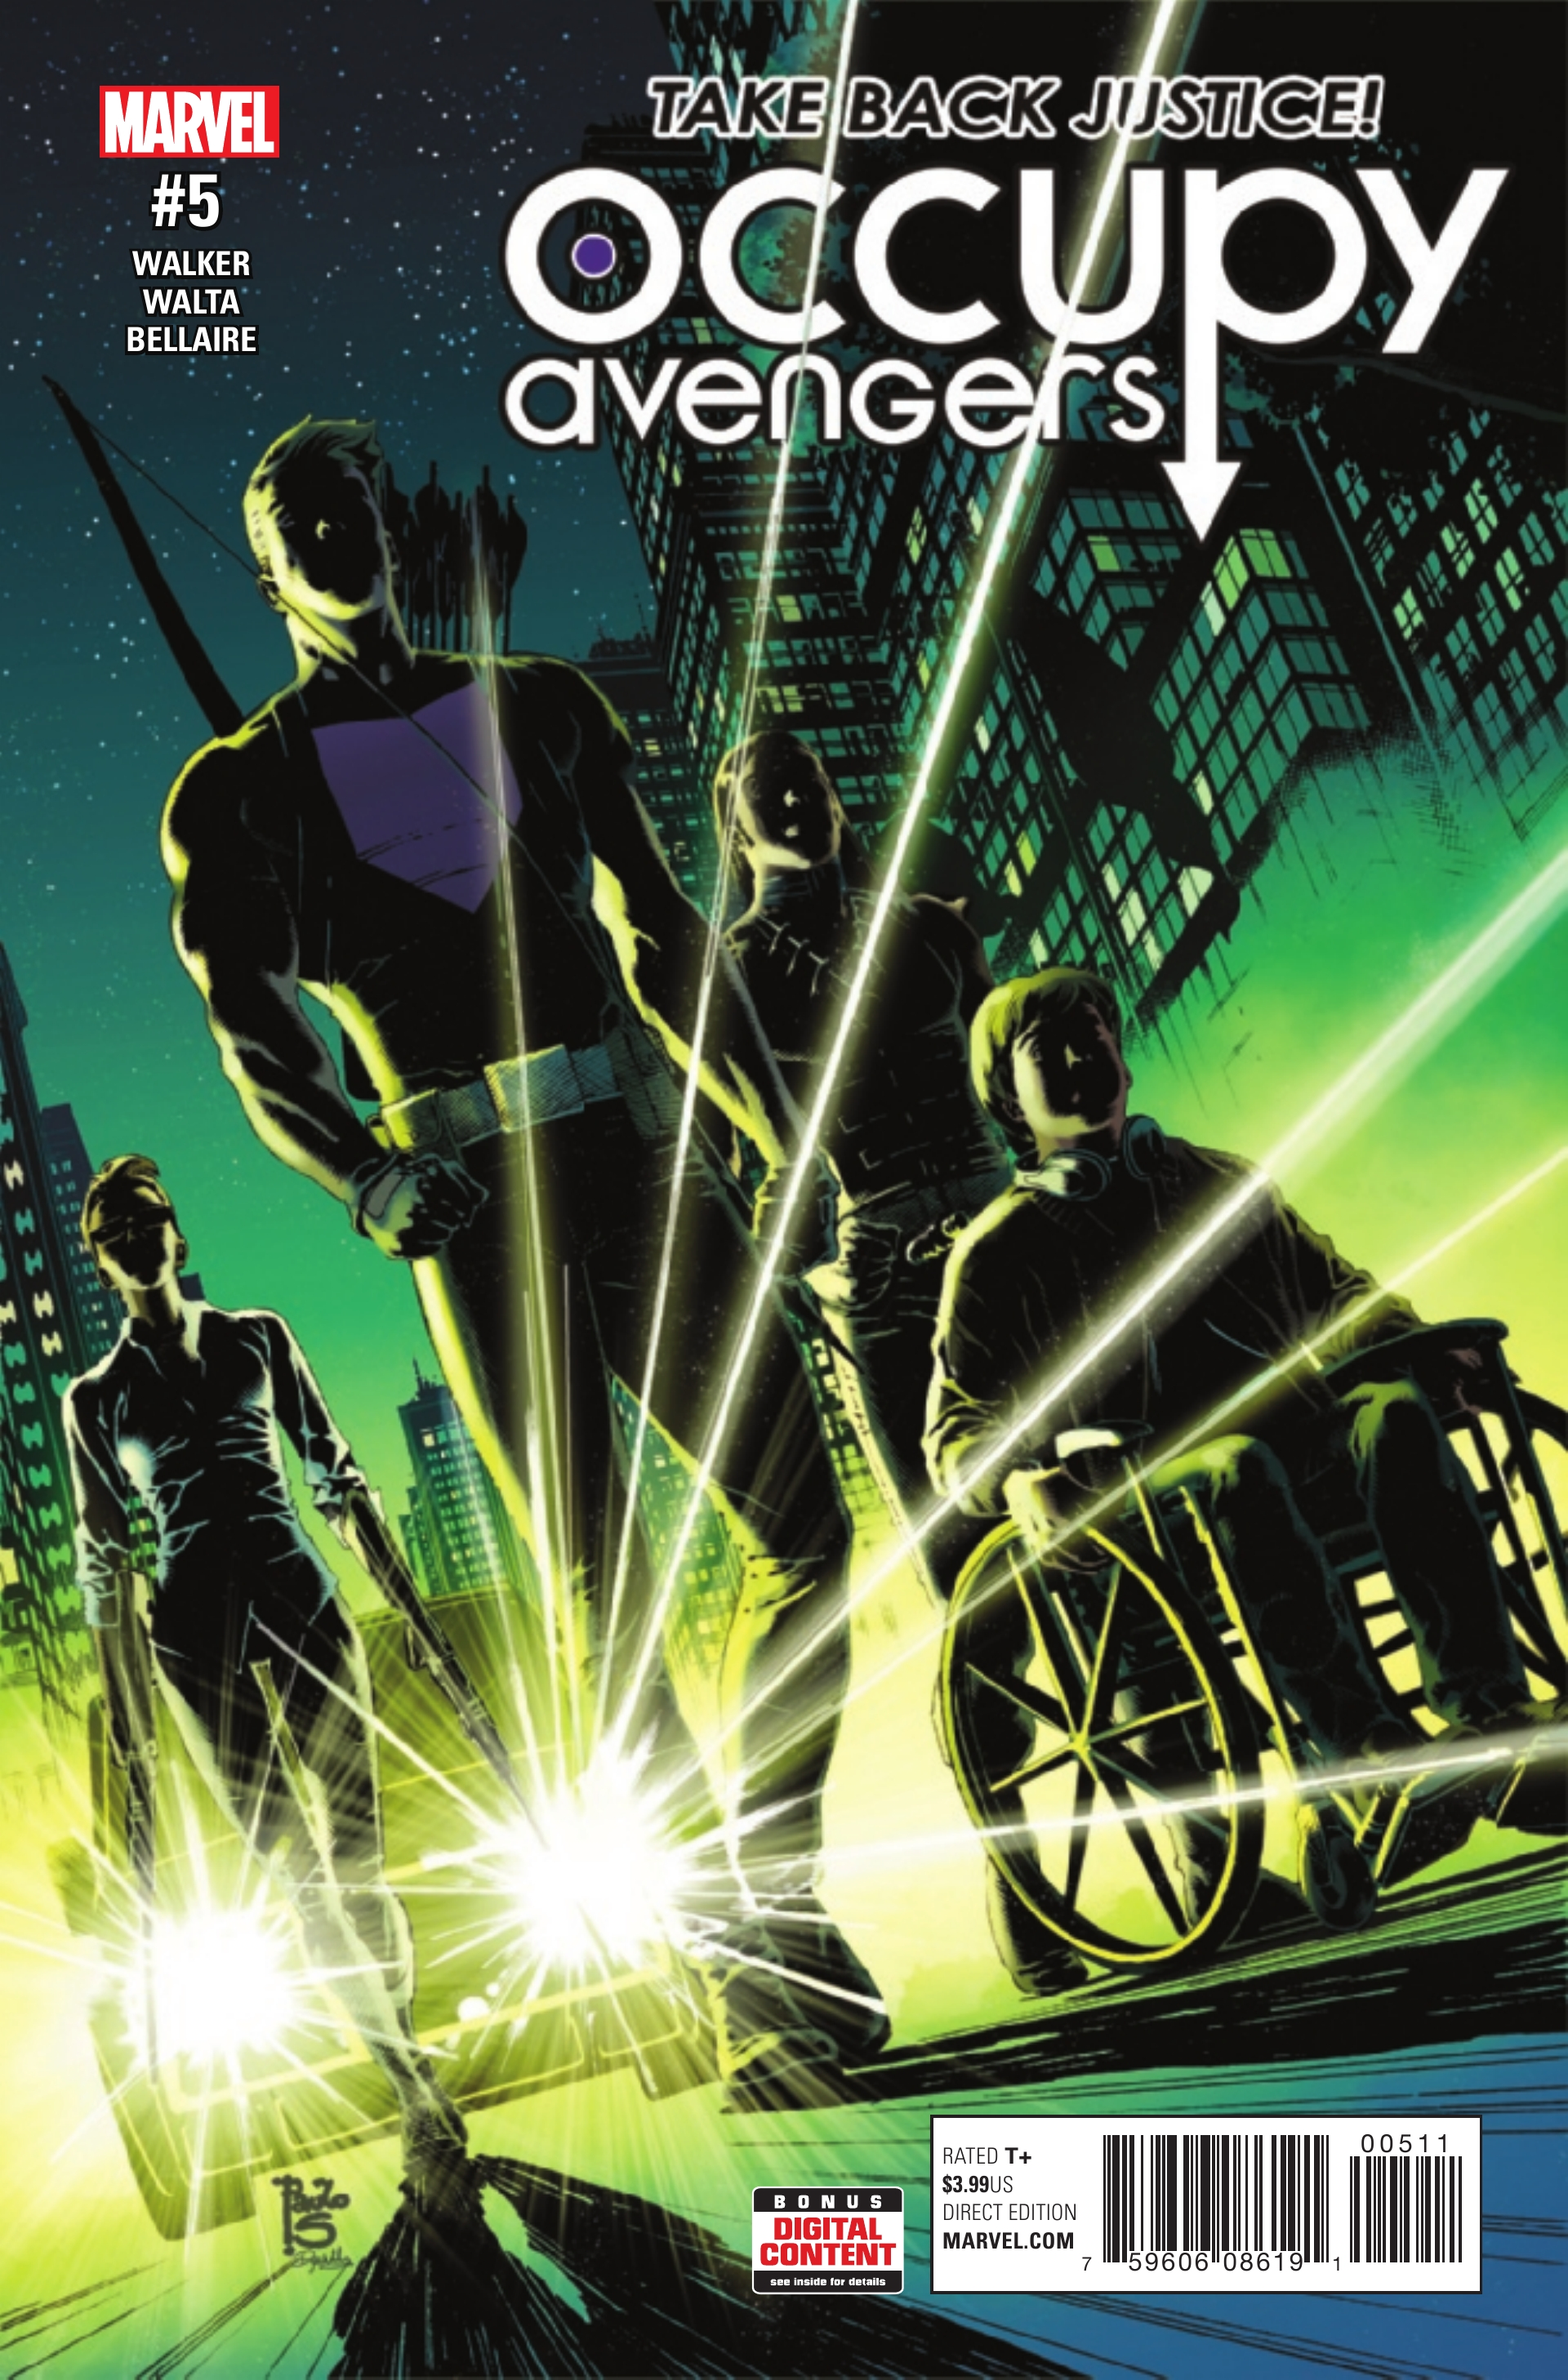 Preview: Occupy Avengers #5